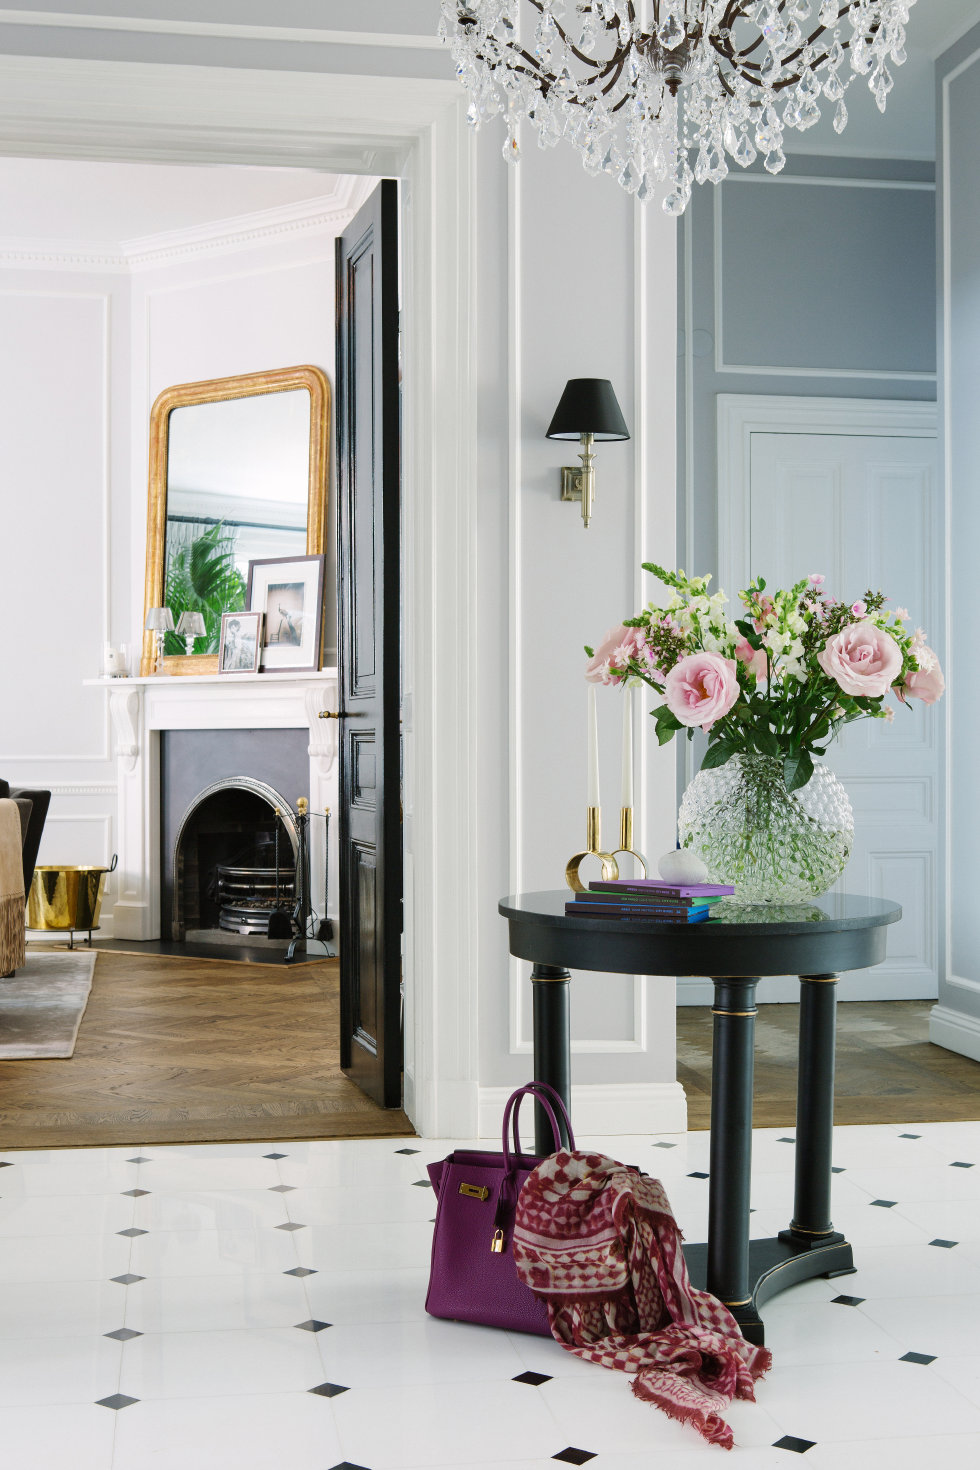 I love the round entry table and black and white theme in this photo from This is Glamorous.